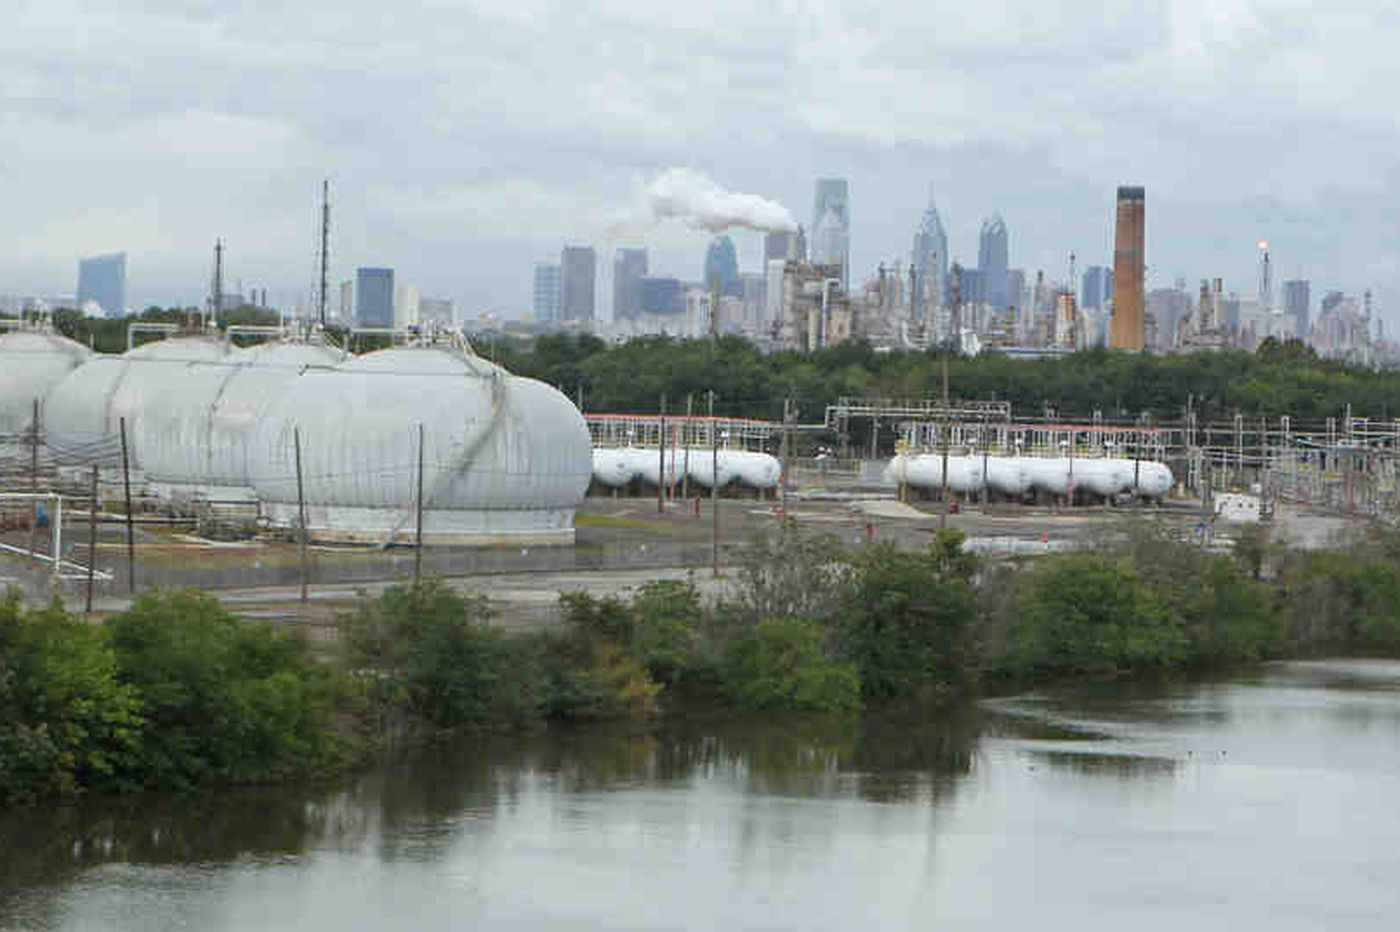 New use for bankrupt Philly refinery? City wants something 'cleaner, safer for Philadelphians'